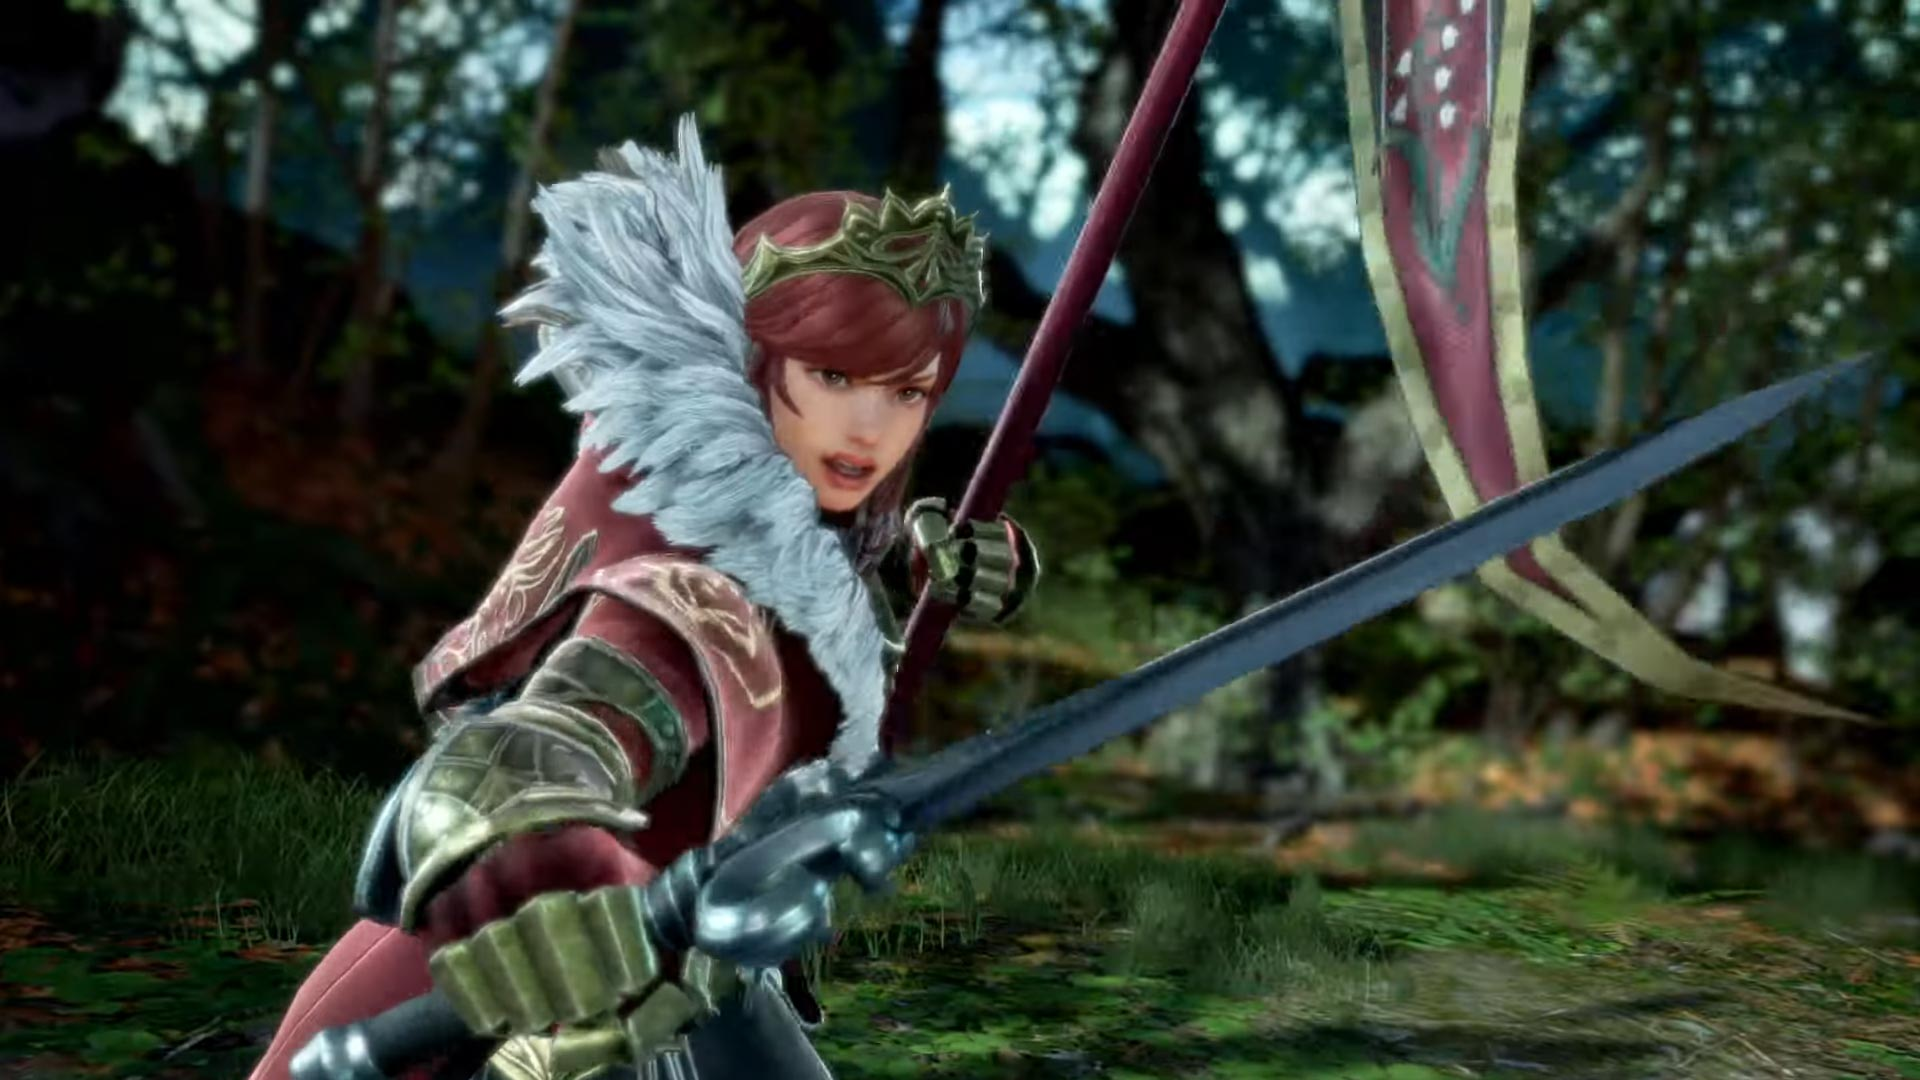 Soul Calibur 6 Hilde Reveal Trailer Gallery 7 out of 9 image gallery